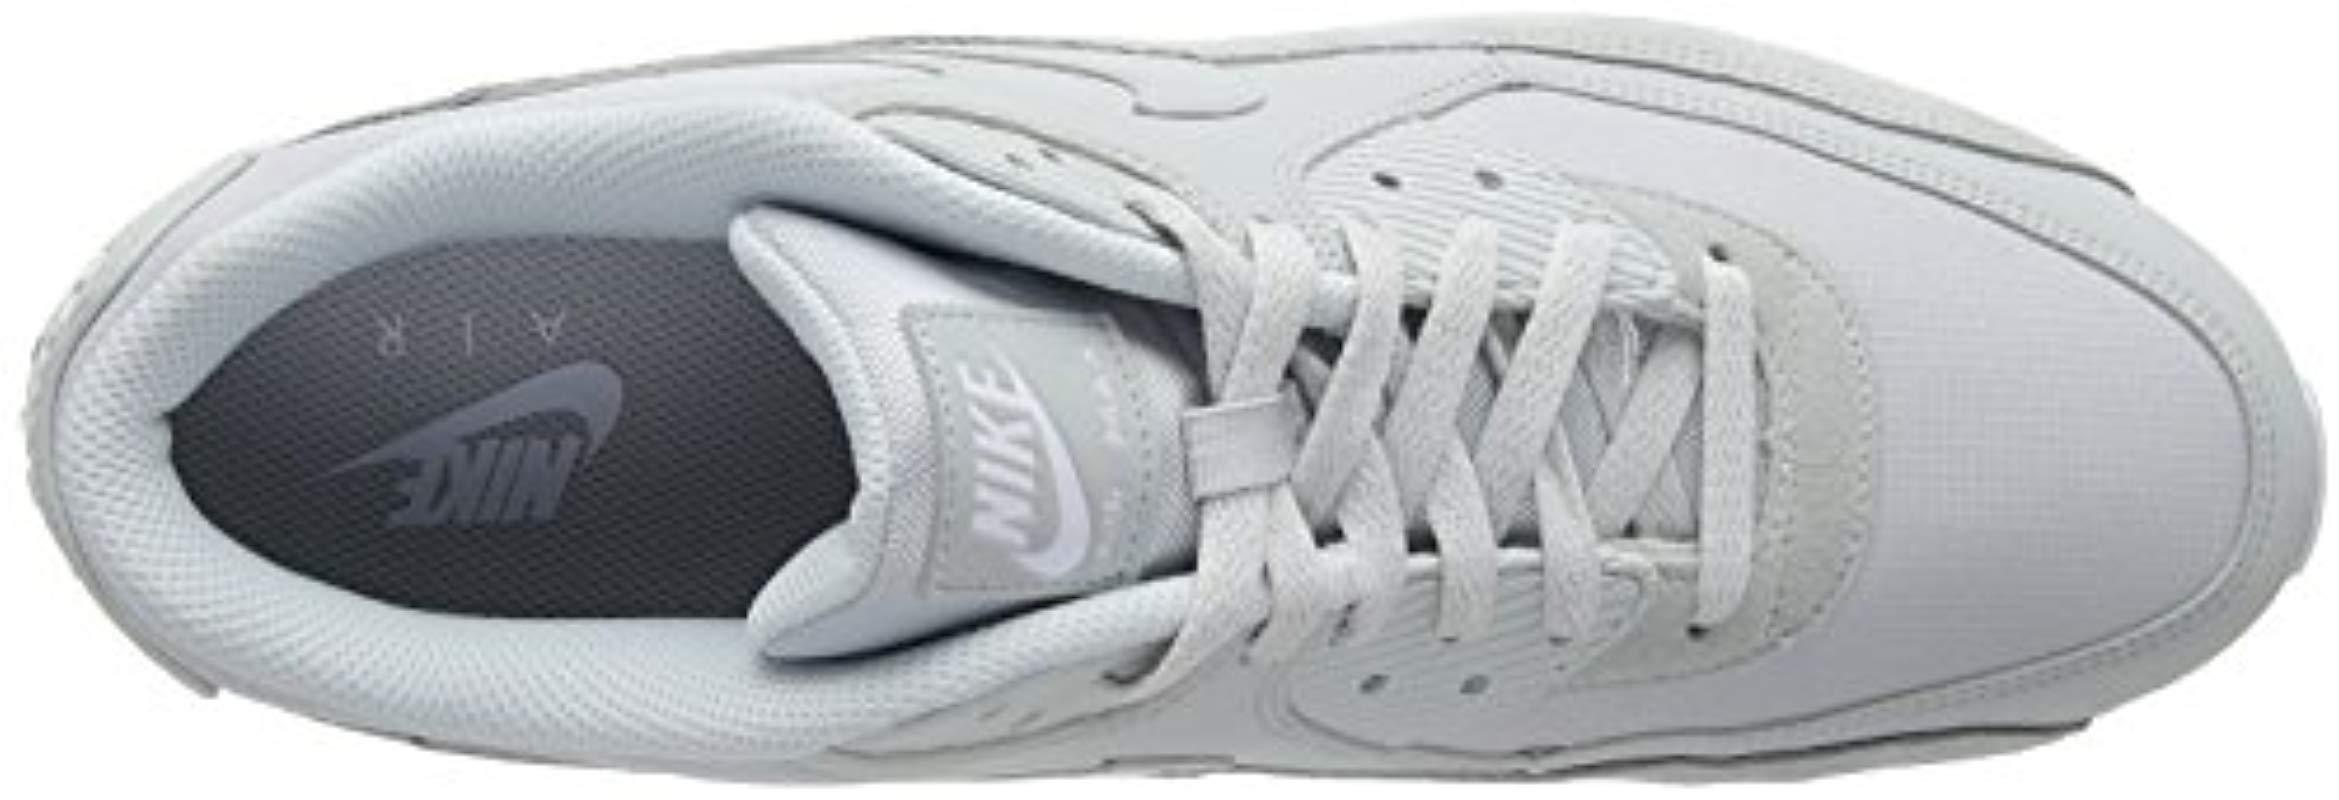 Nike Leather Air Max 90 Essential Gymnastics Shoes in Grey (Grey) for Men